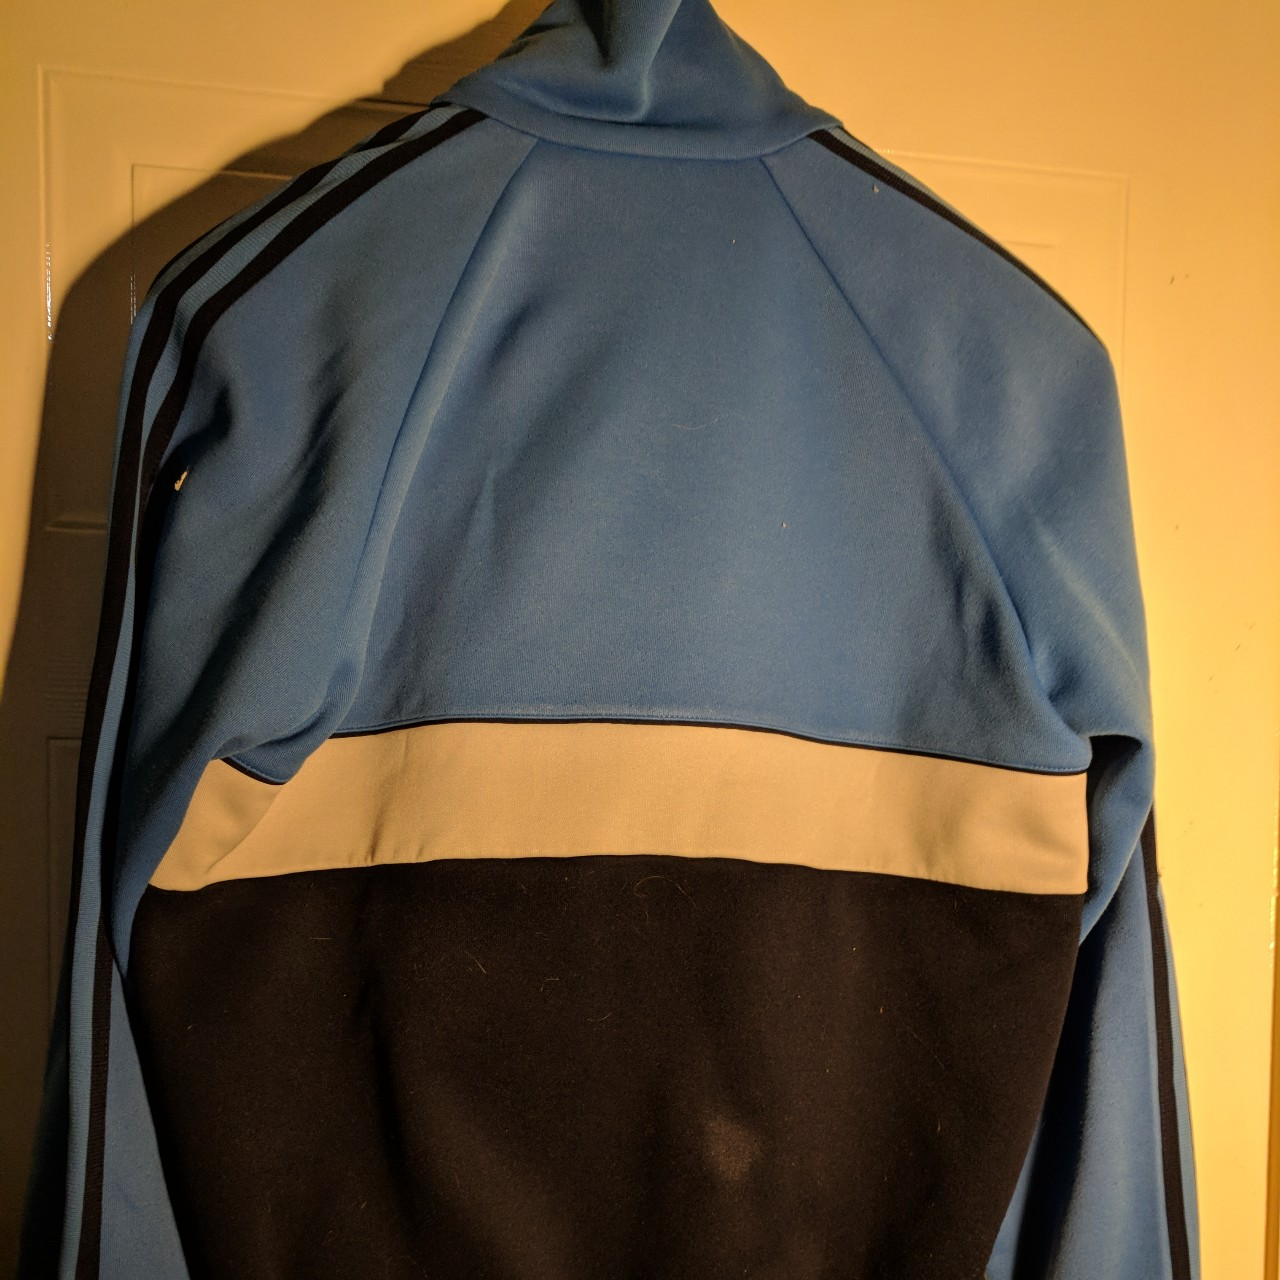 Adidas vintage jacket. Original 1970s jacket. Great Depop